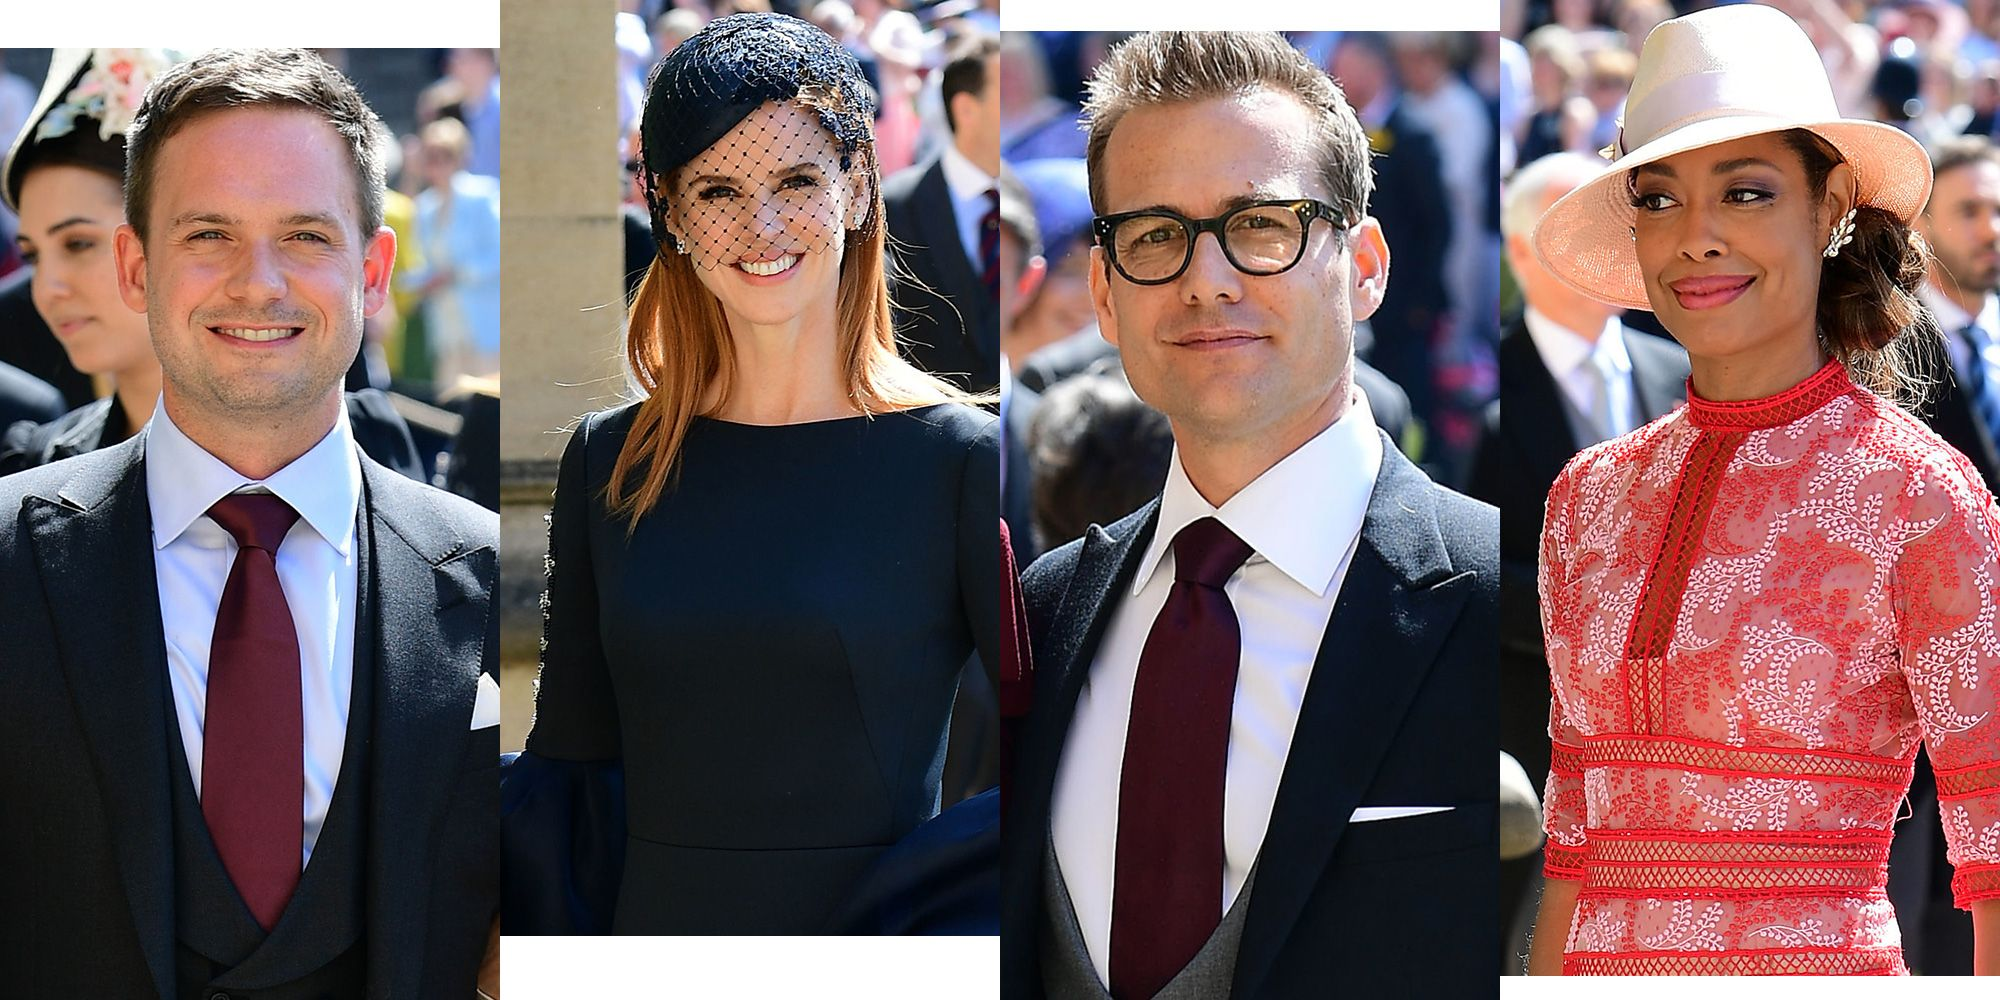 Suits Cast At Royal Wedding Which Suits Cast Members